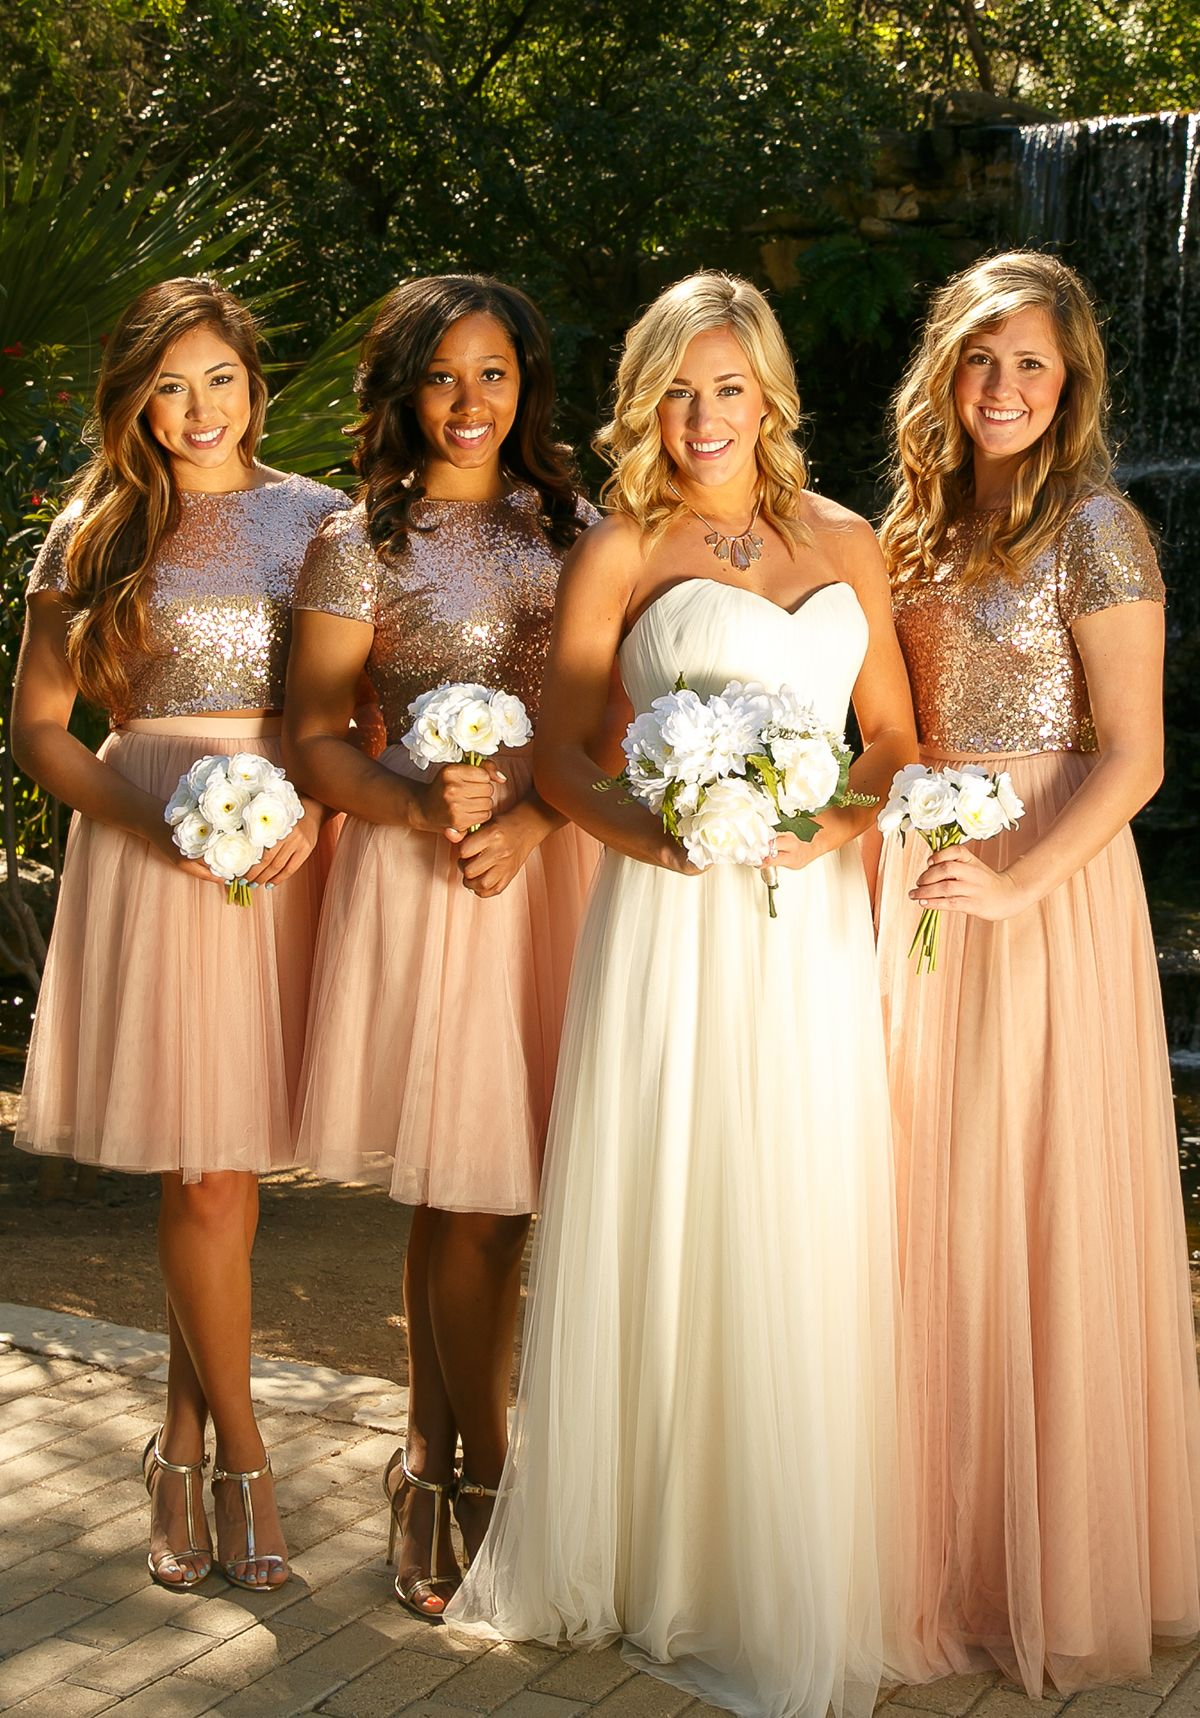 Mix and match sparkle crop top bridesmaid dresses from mix and match sparkle crop top bridesmaid dresses from shoprevelry ombrellifo Images